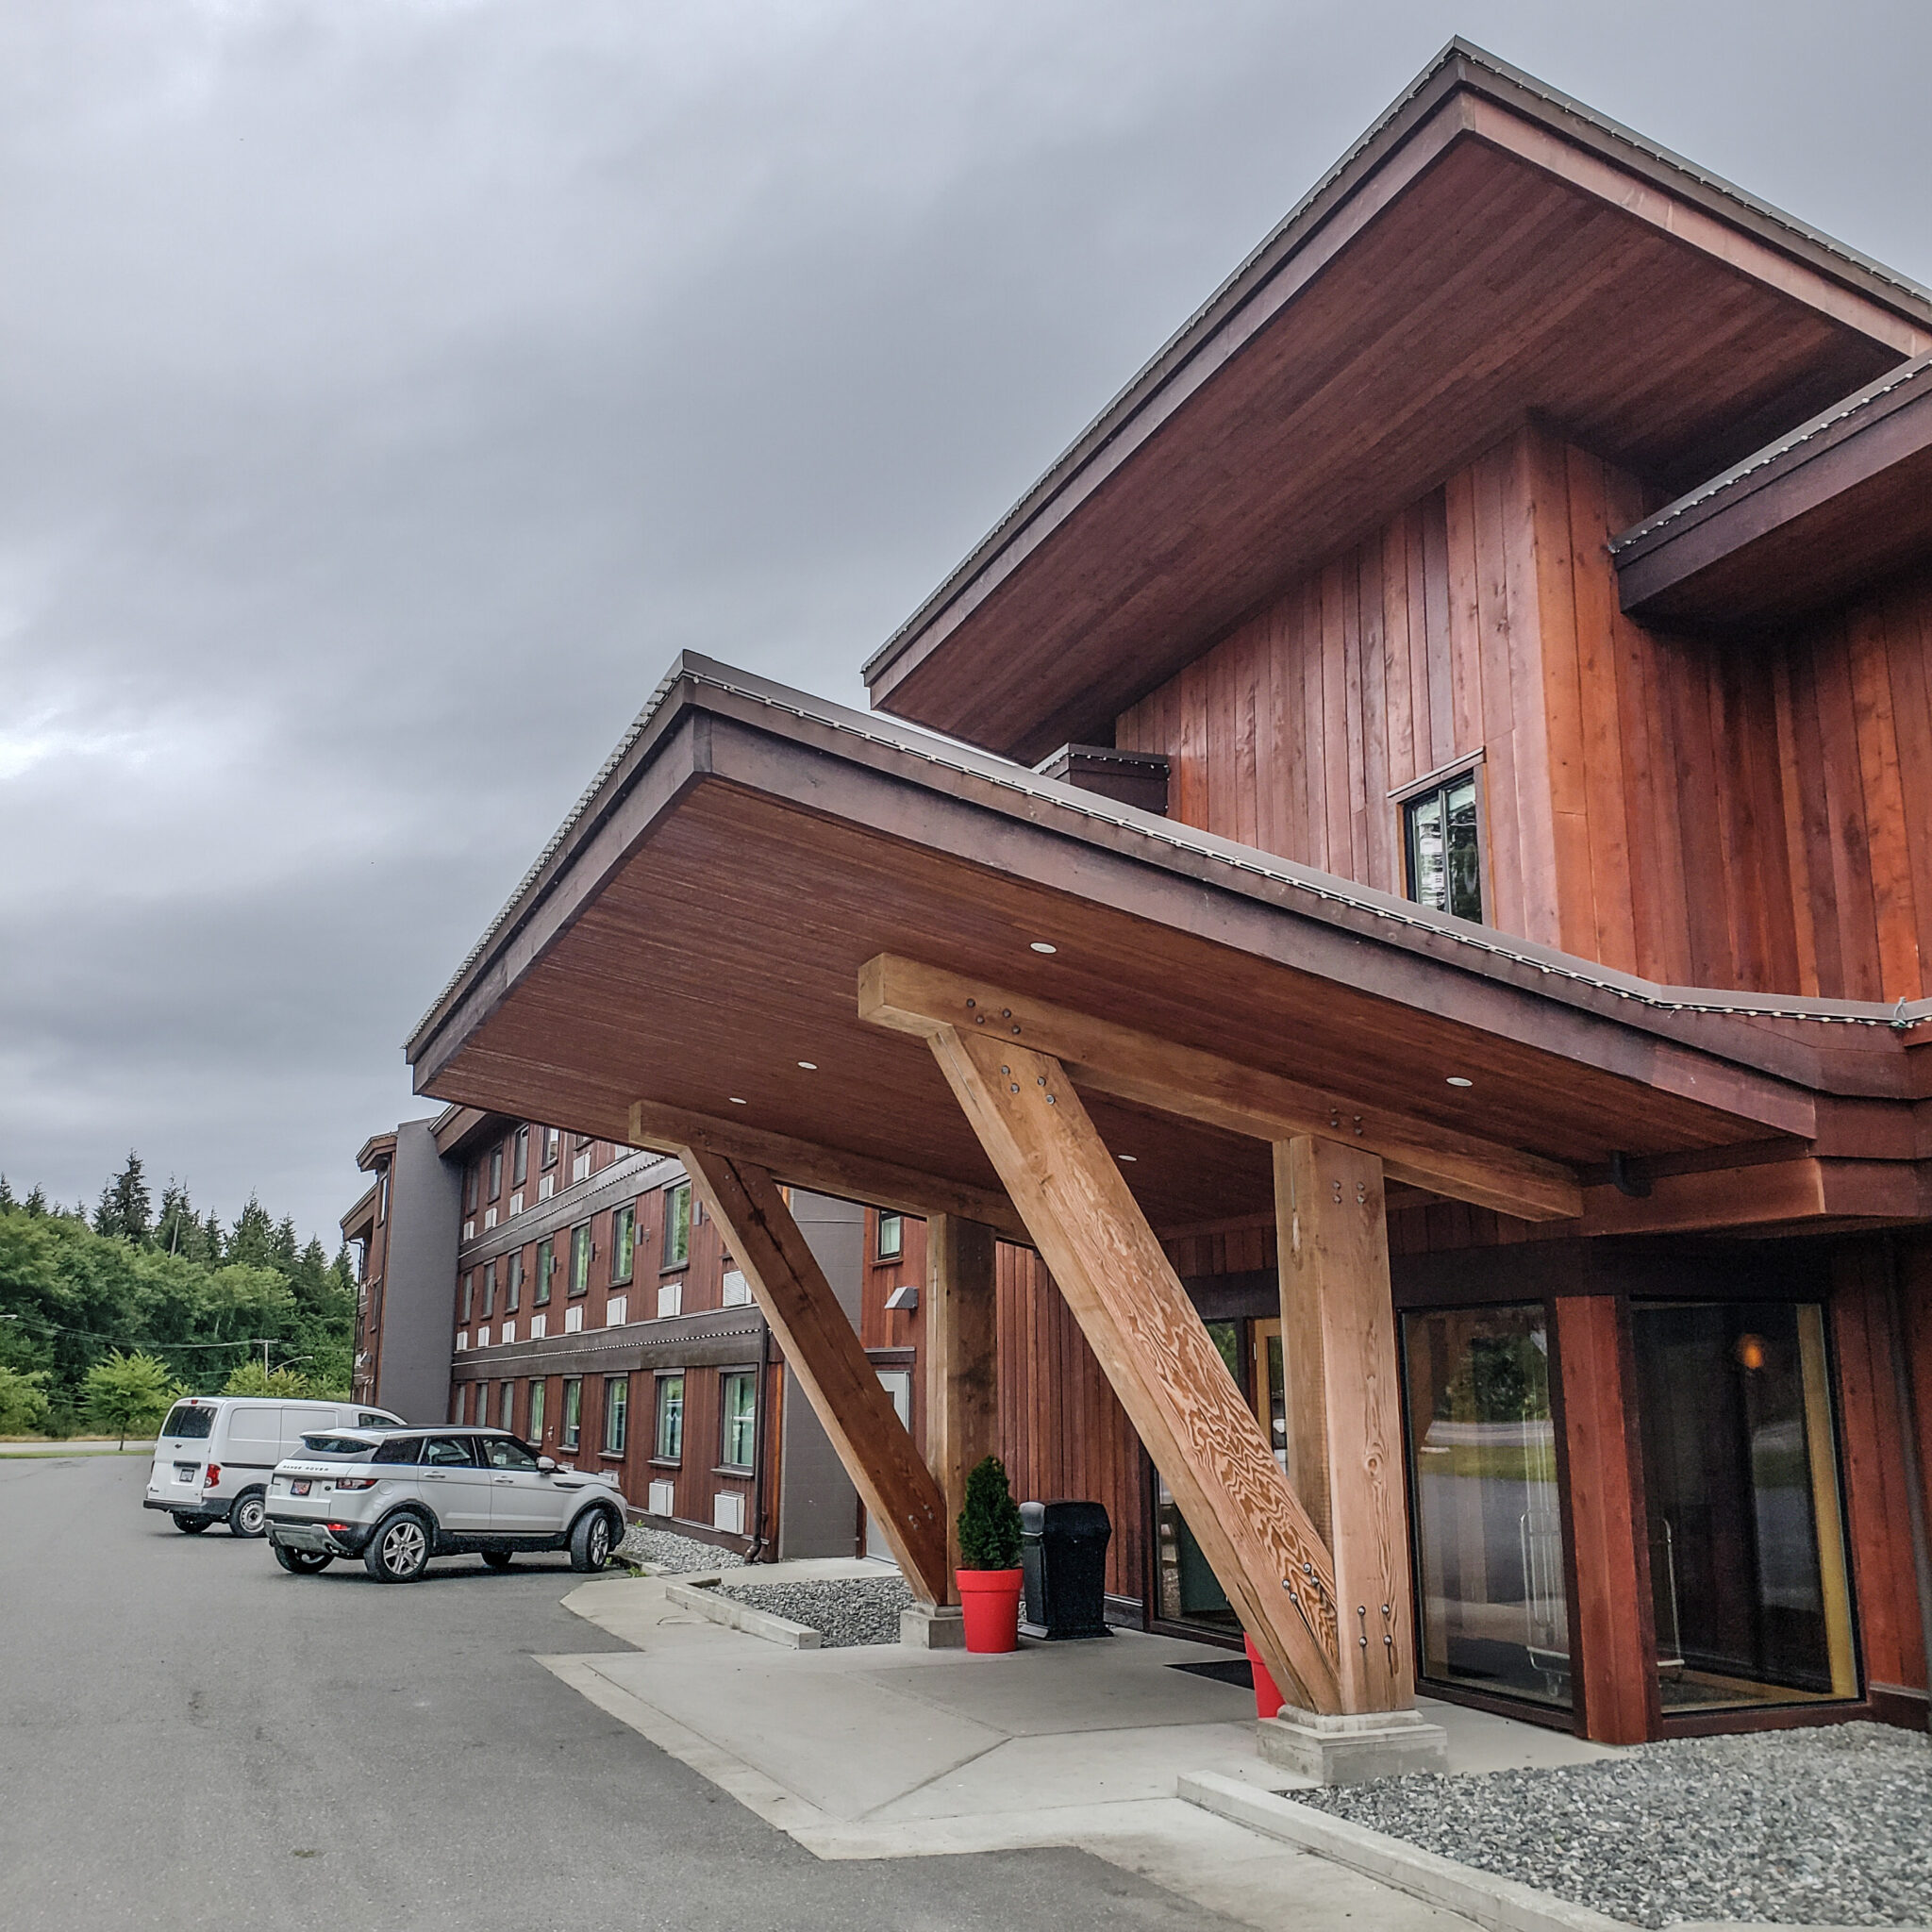 Visit Port Hardy - Vancouver Island North - Explore Canada - Hello British Columbia - Kwa'lilas Hotel - Indigenous travel - indigenous tourism bc - exterior - front entrance